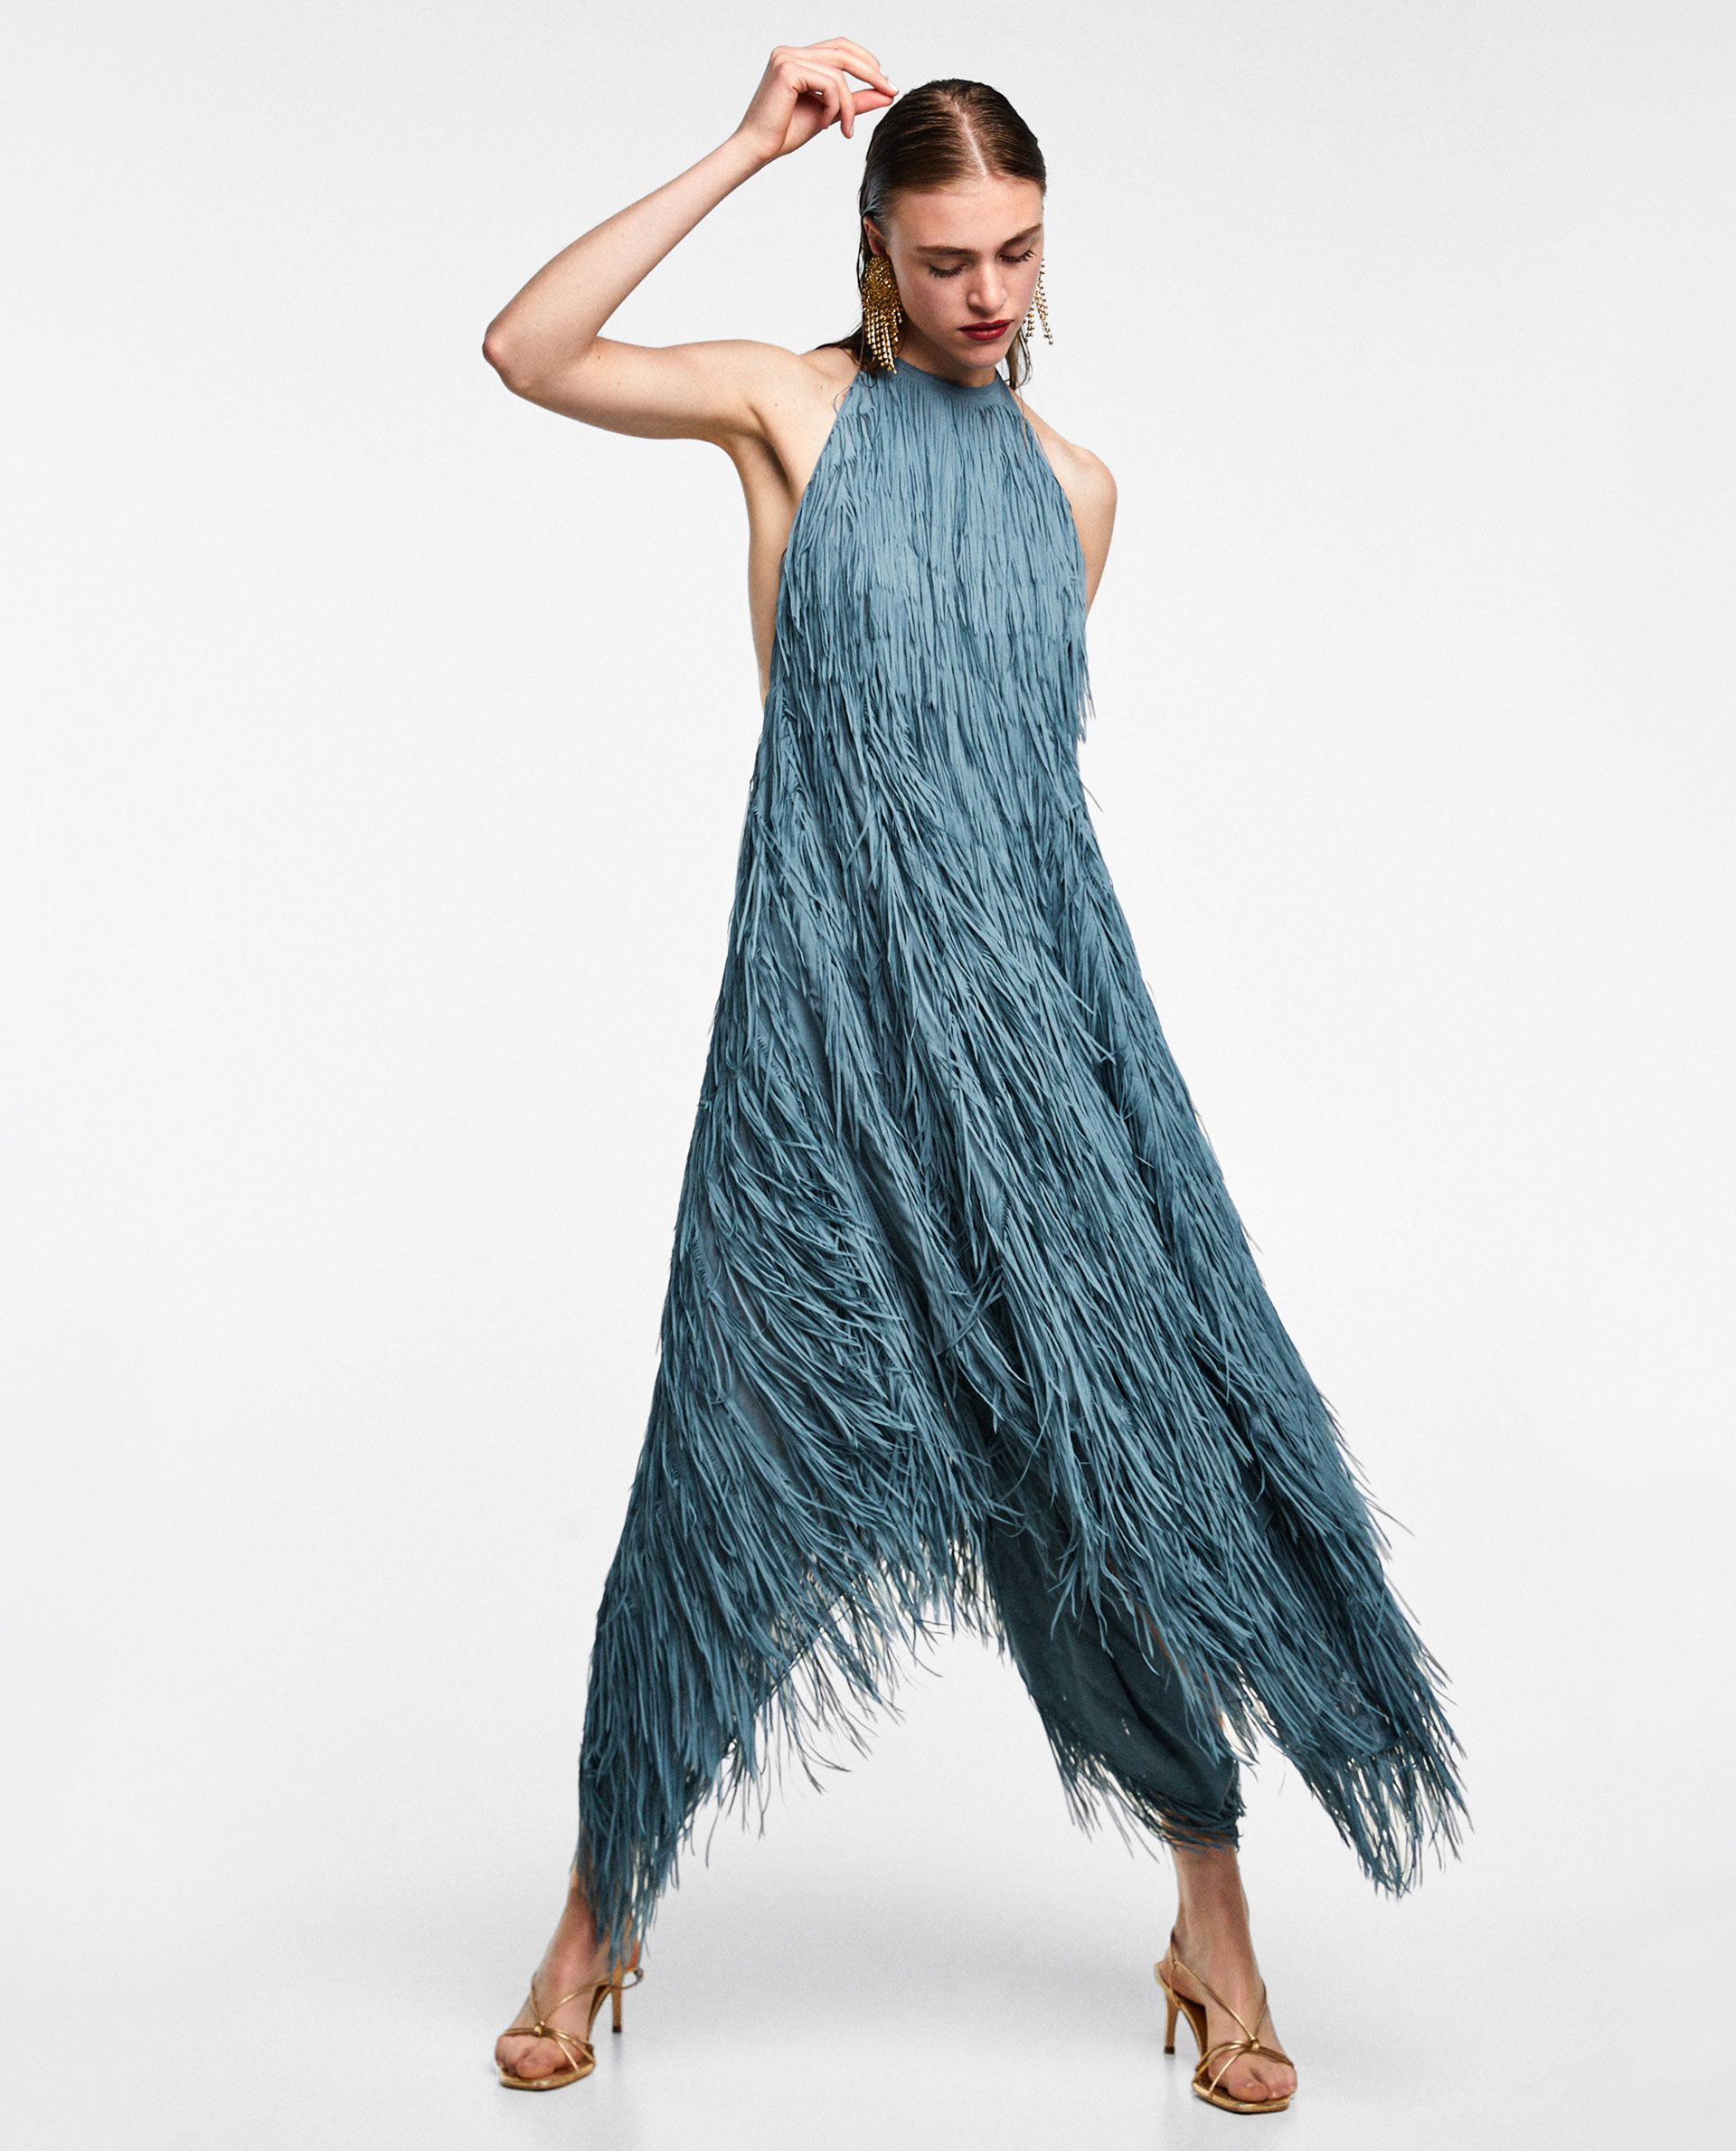 61c07855 VESTIDO HALTER FLECOS | Let's make bold statements. | Fringe dress ...